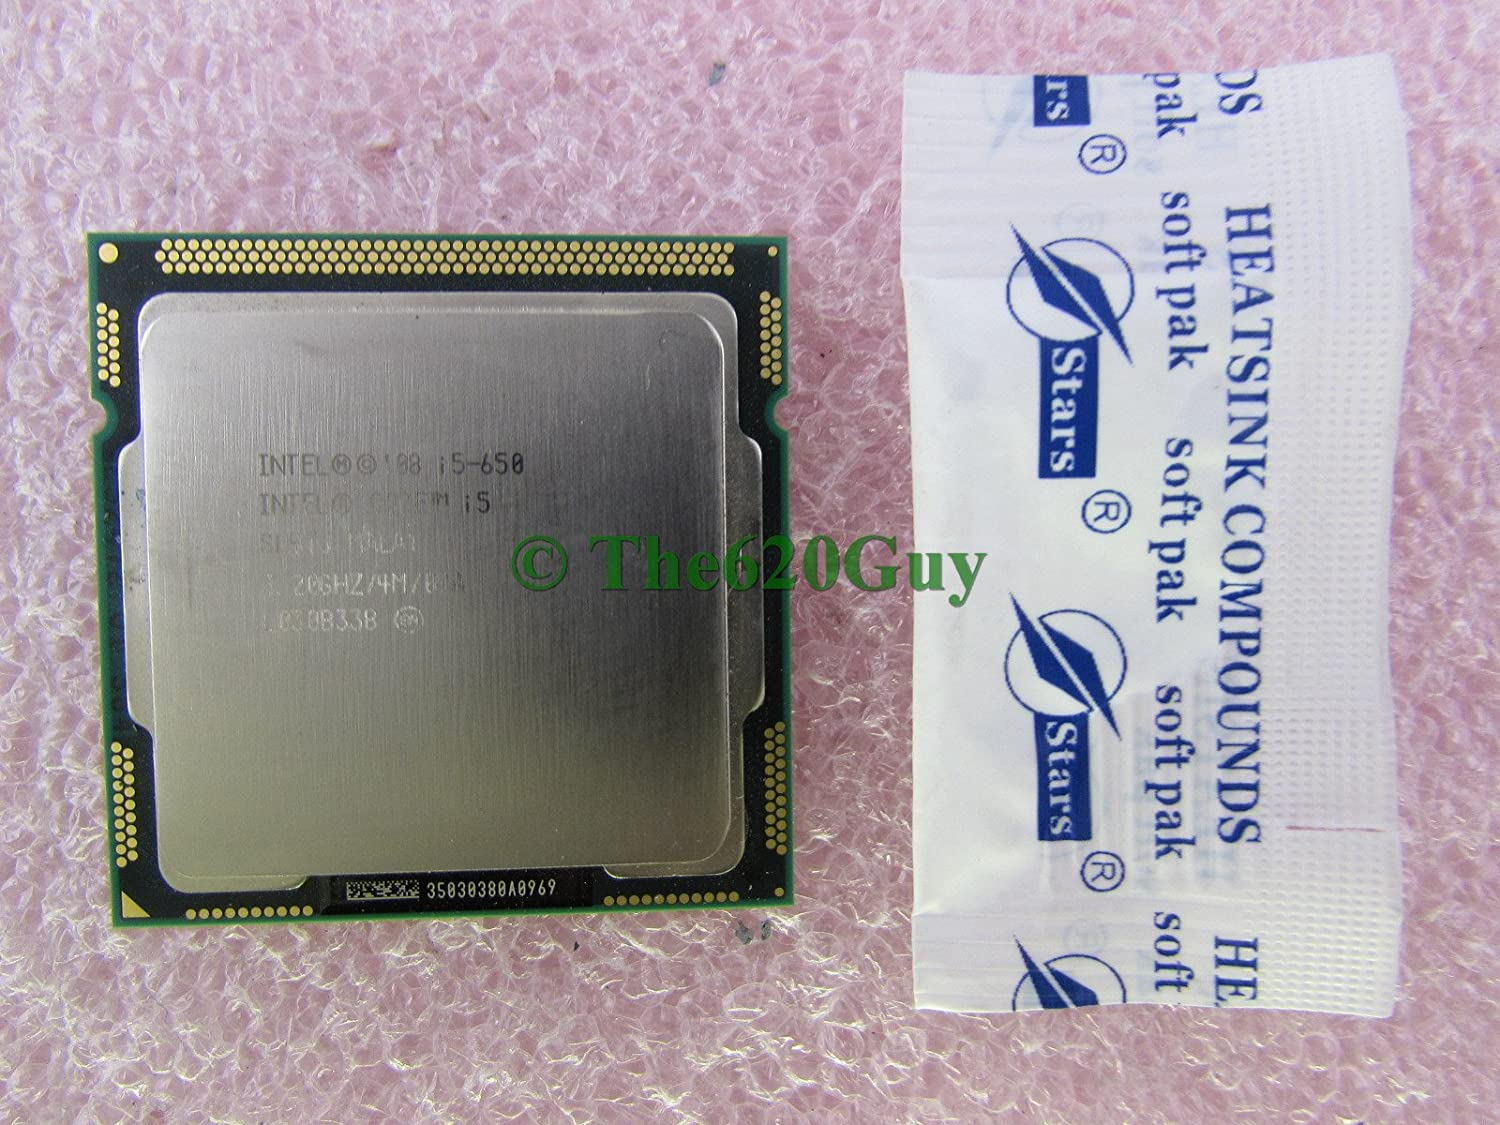 4M Cache, 3.20 GHz CPU LGA 1156 100/% Working Properly Desktop Processor PC Computer Intel Core I5-650 I5 650 Processor